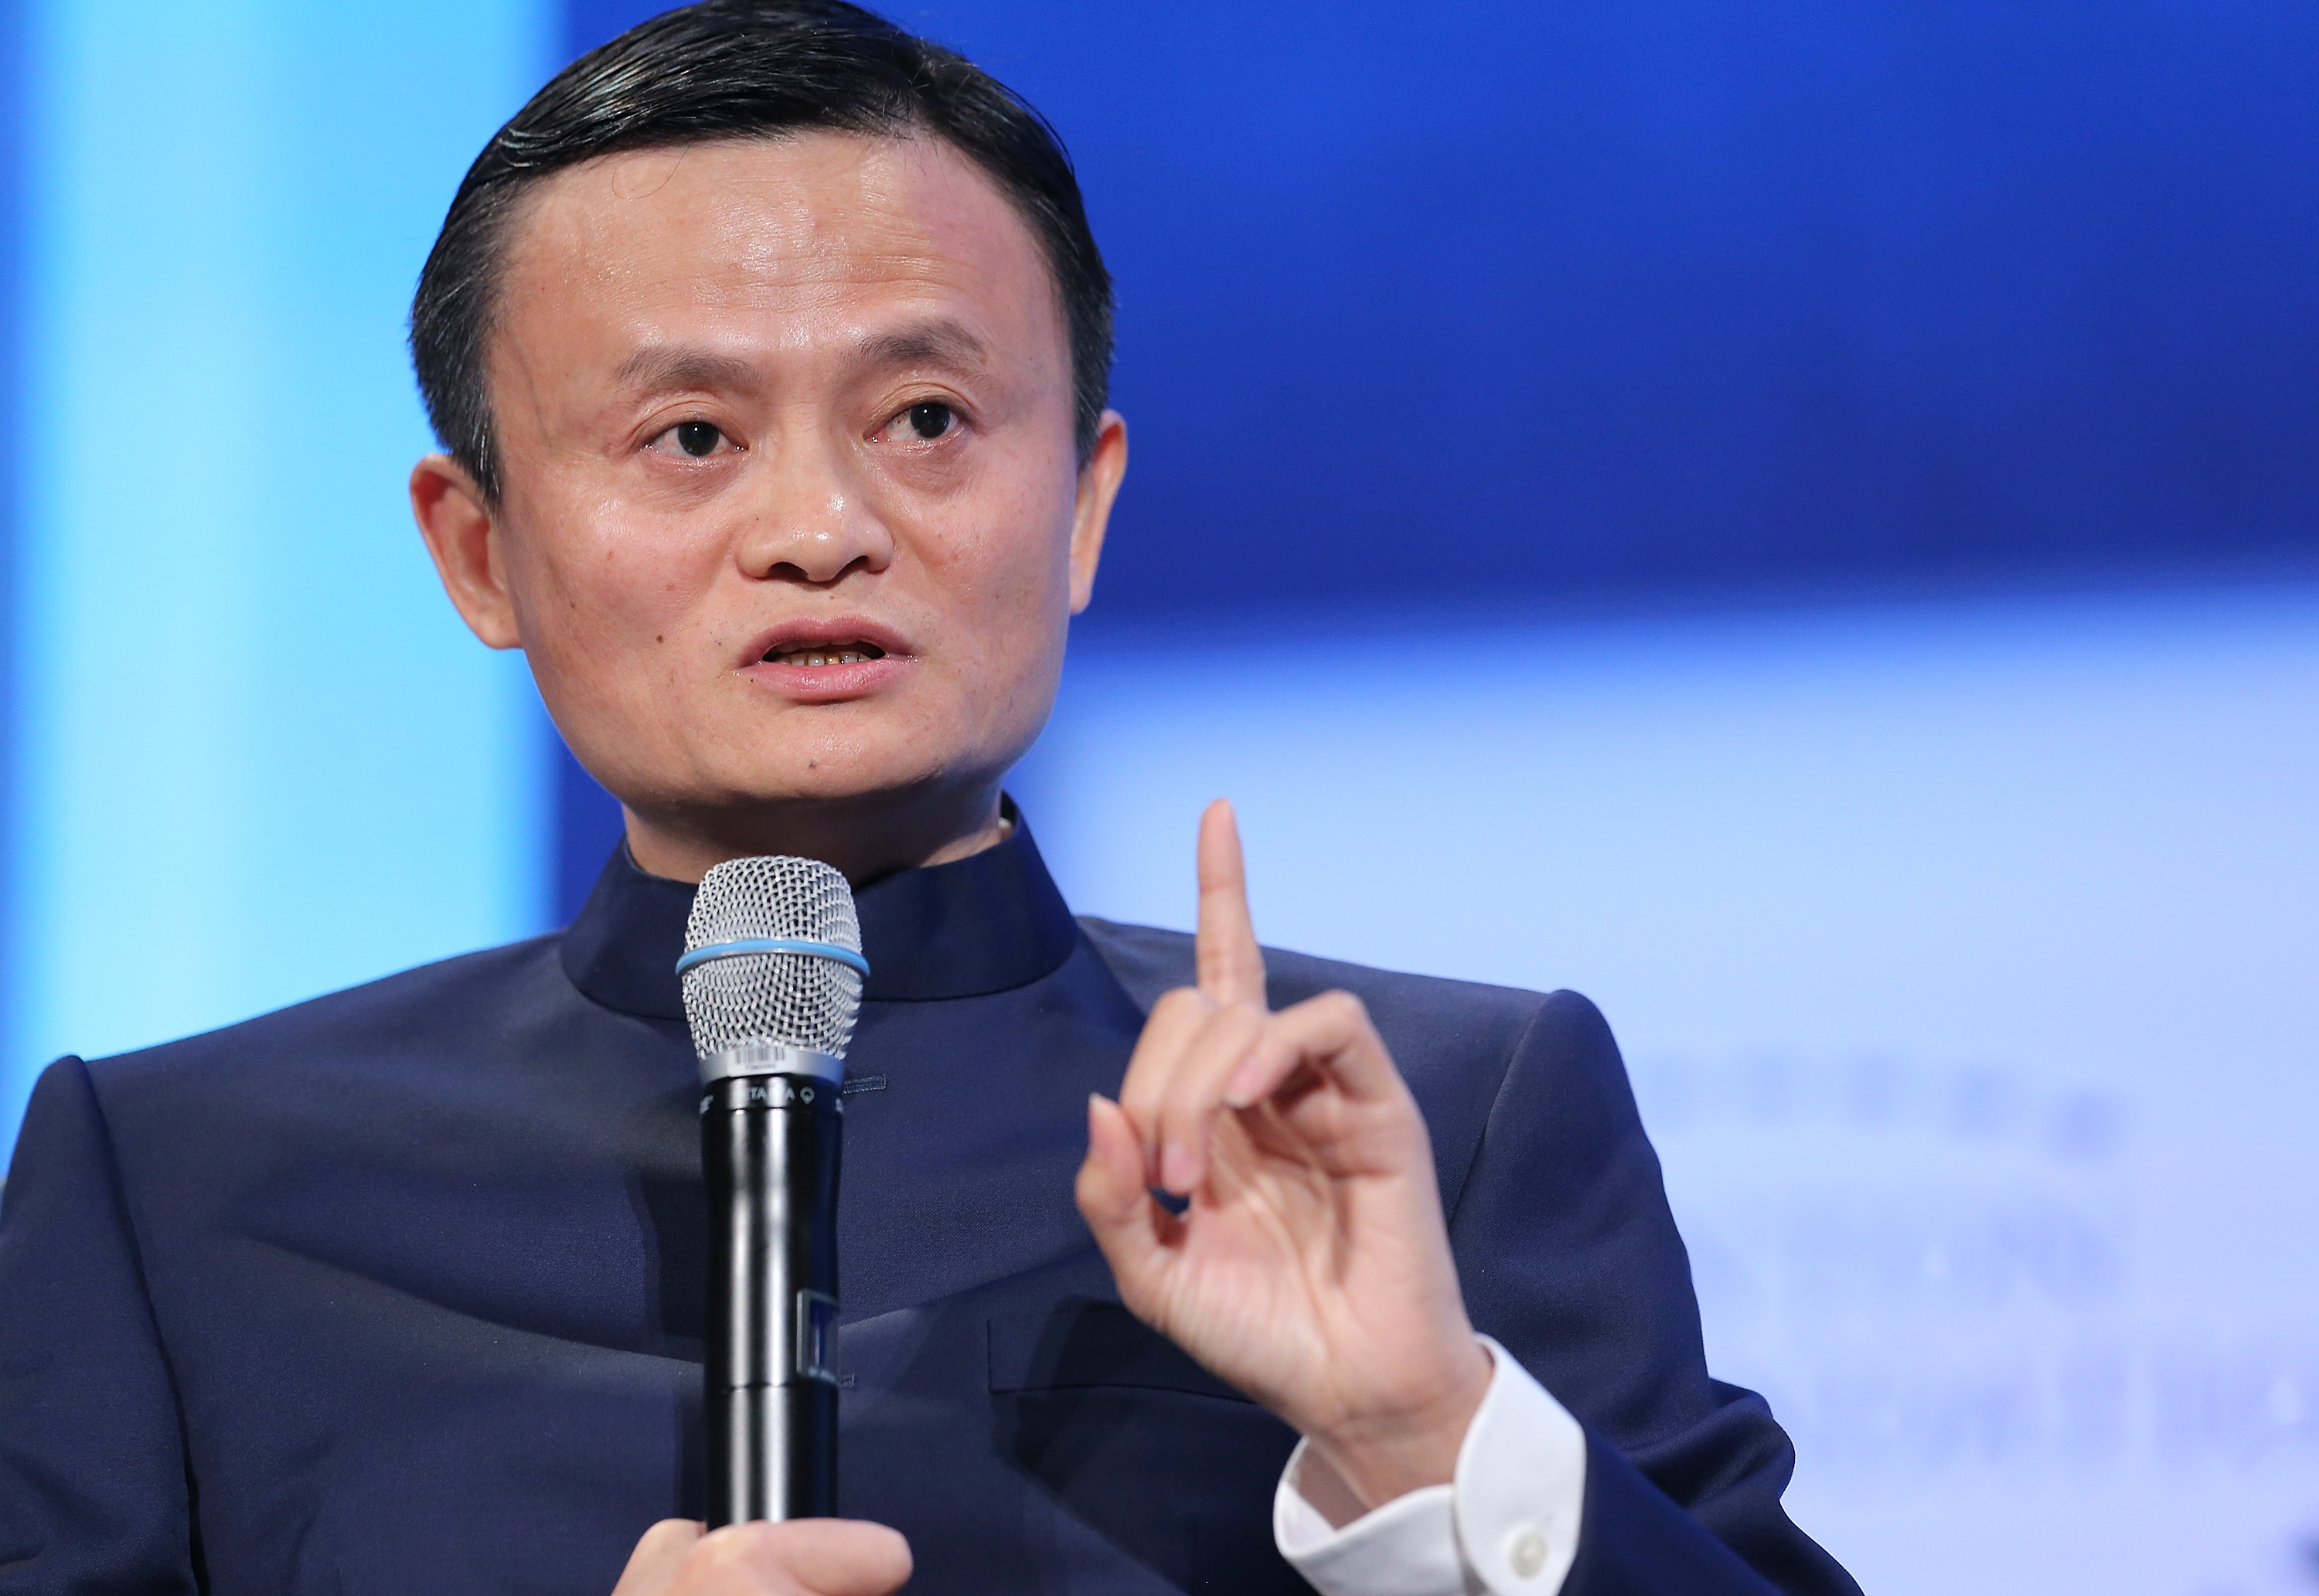 Executive Chairman of the Alibaba Group Jack Ma speaks during the  Valuing What Matters  panl discussion during the third day of the Clinton Global Initiative's 10th Annual Meeting on September 23, 2014 in New York City.